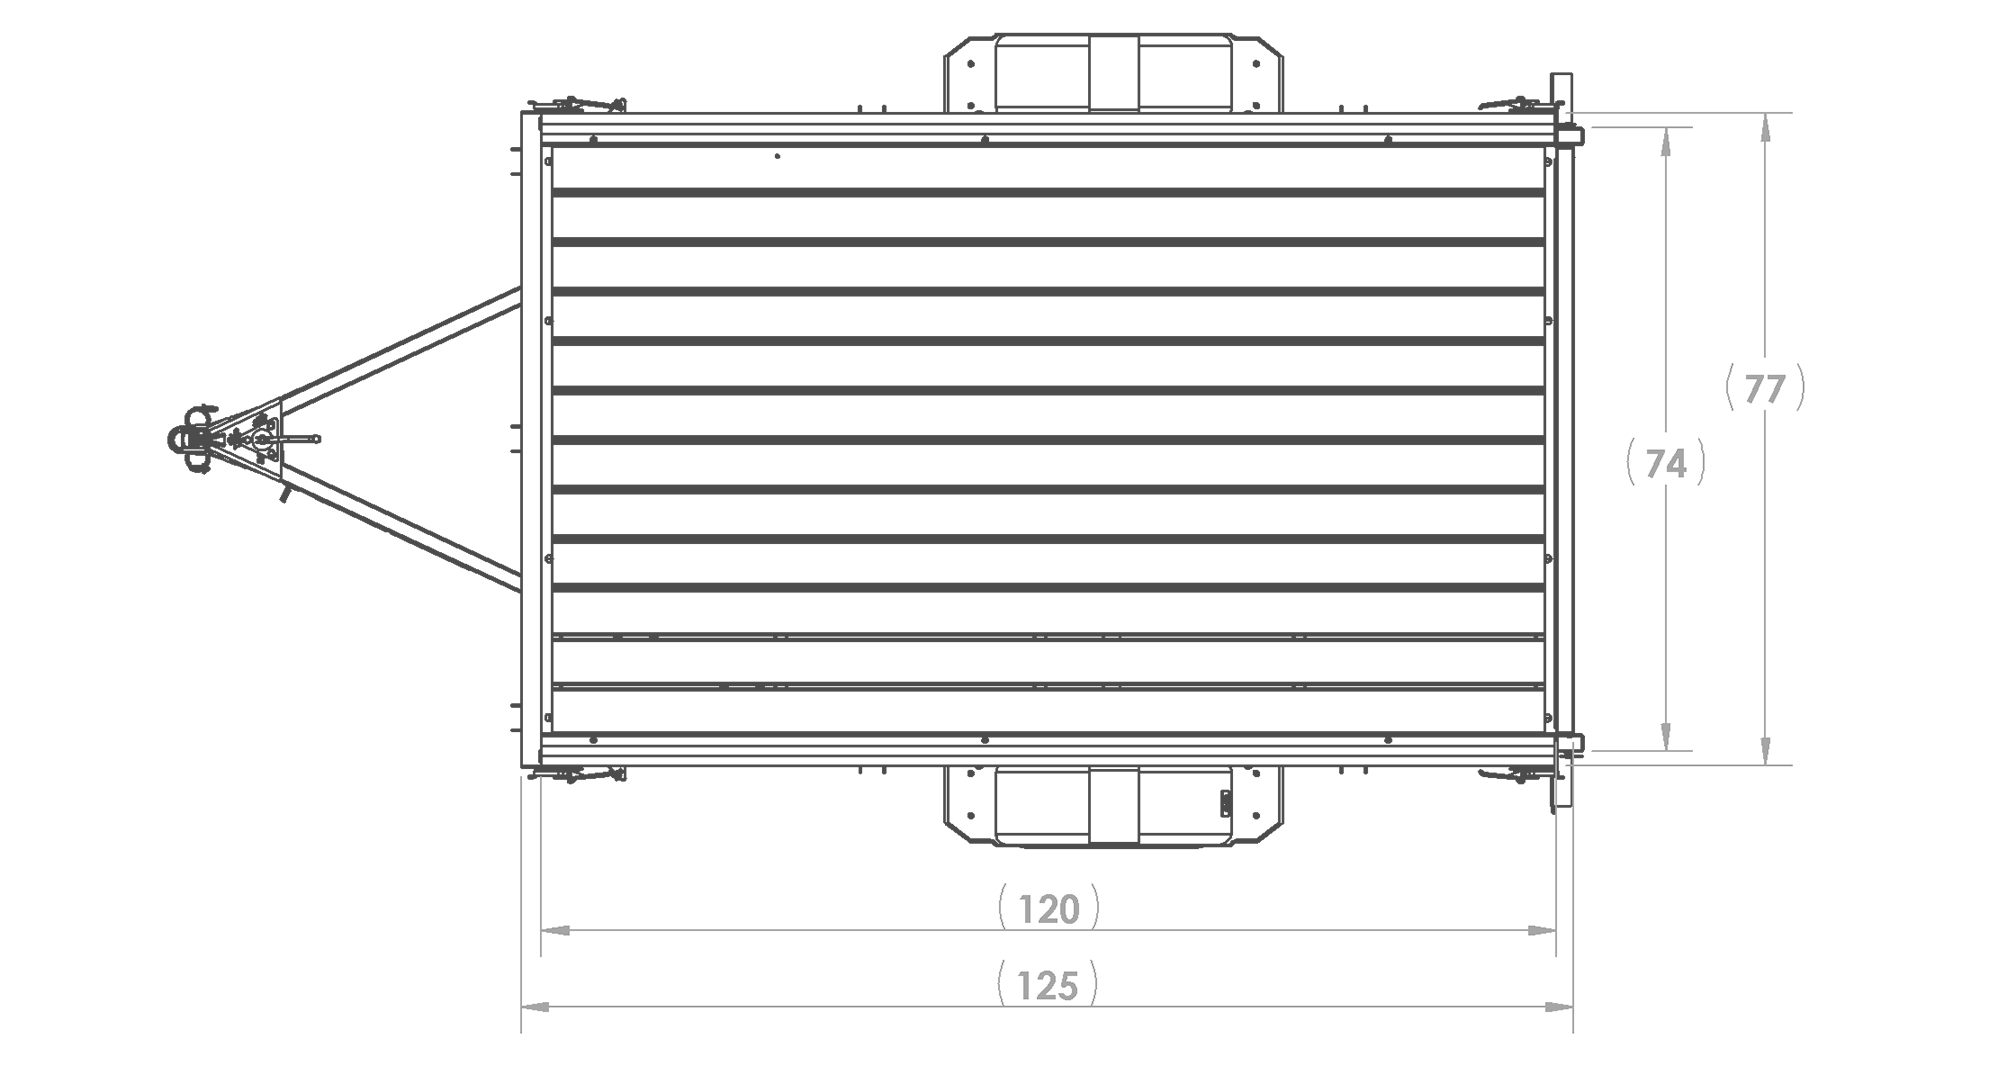 Karavan Trailer's 6 x 10 Ft. Steel Utility Trailer, model number 2990-72-10, Top View Measurement